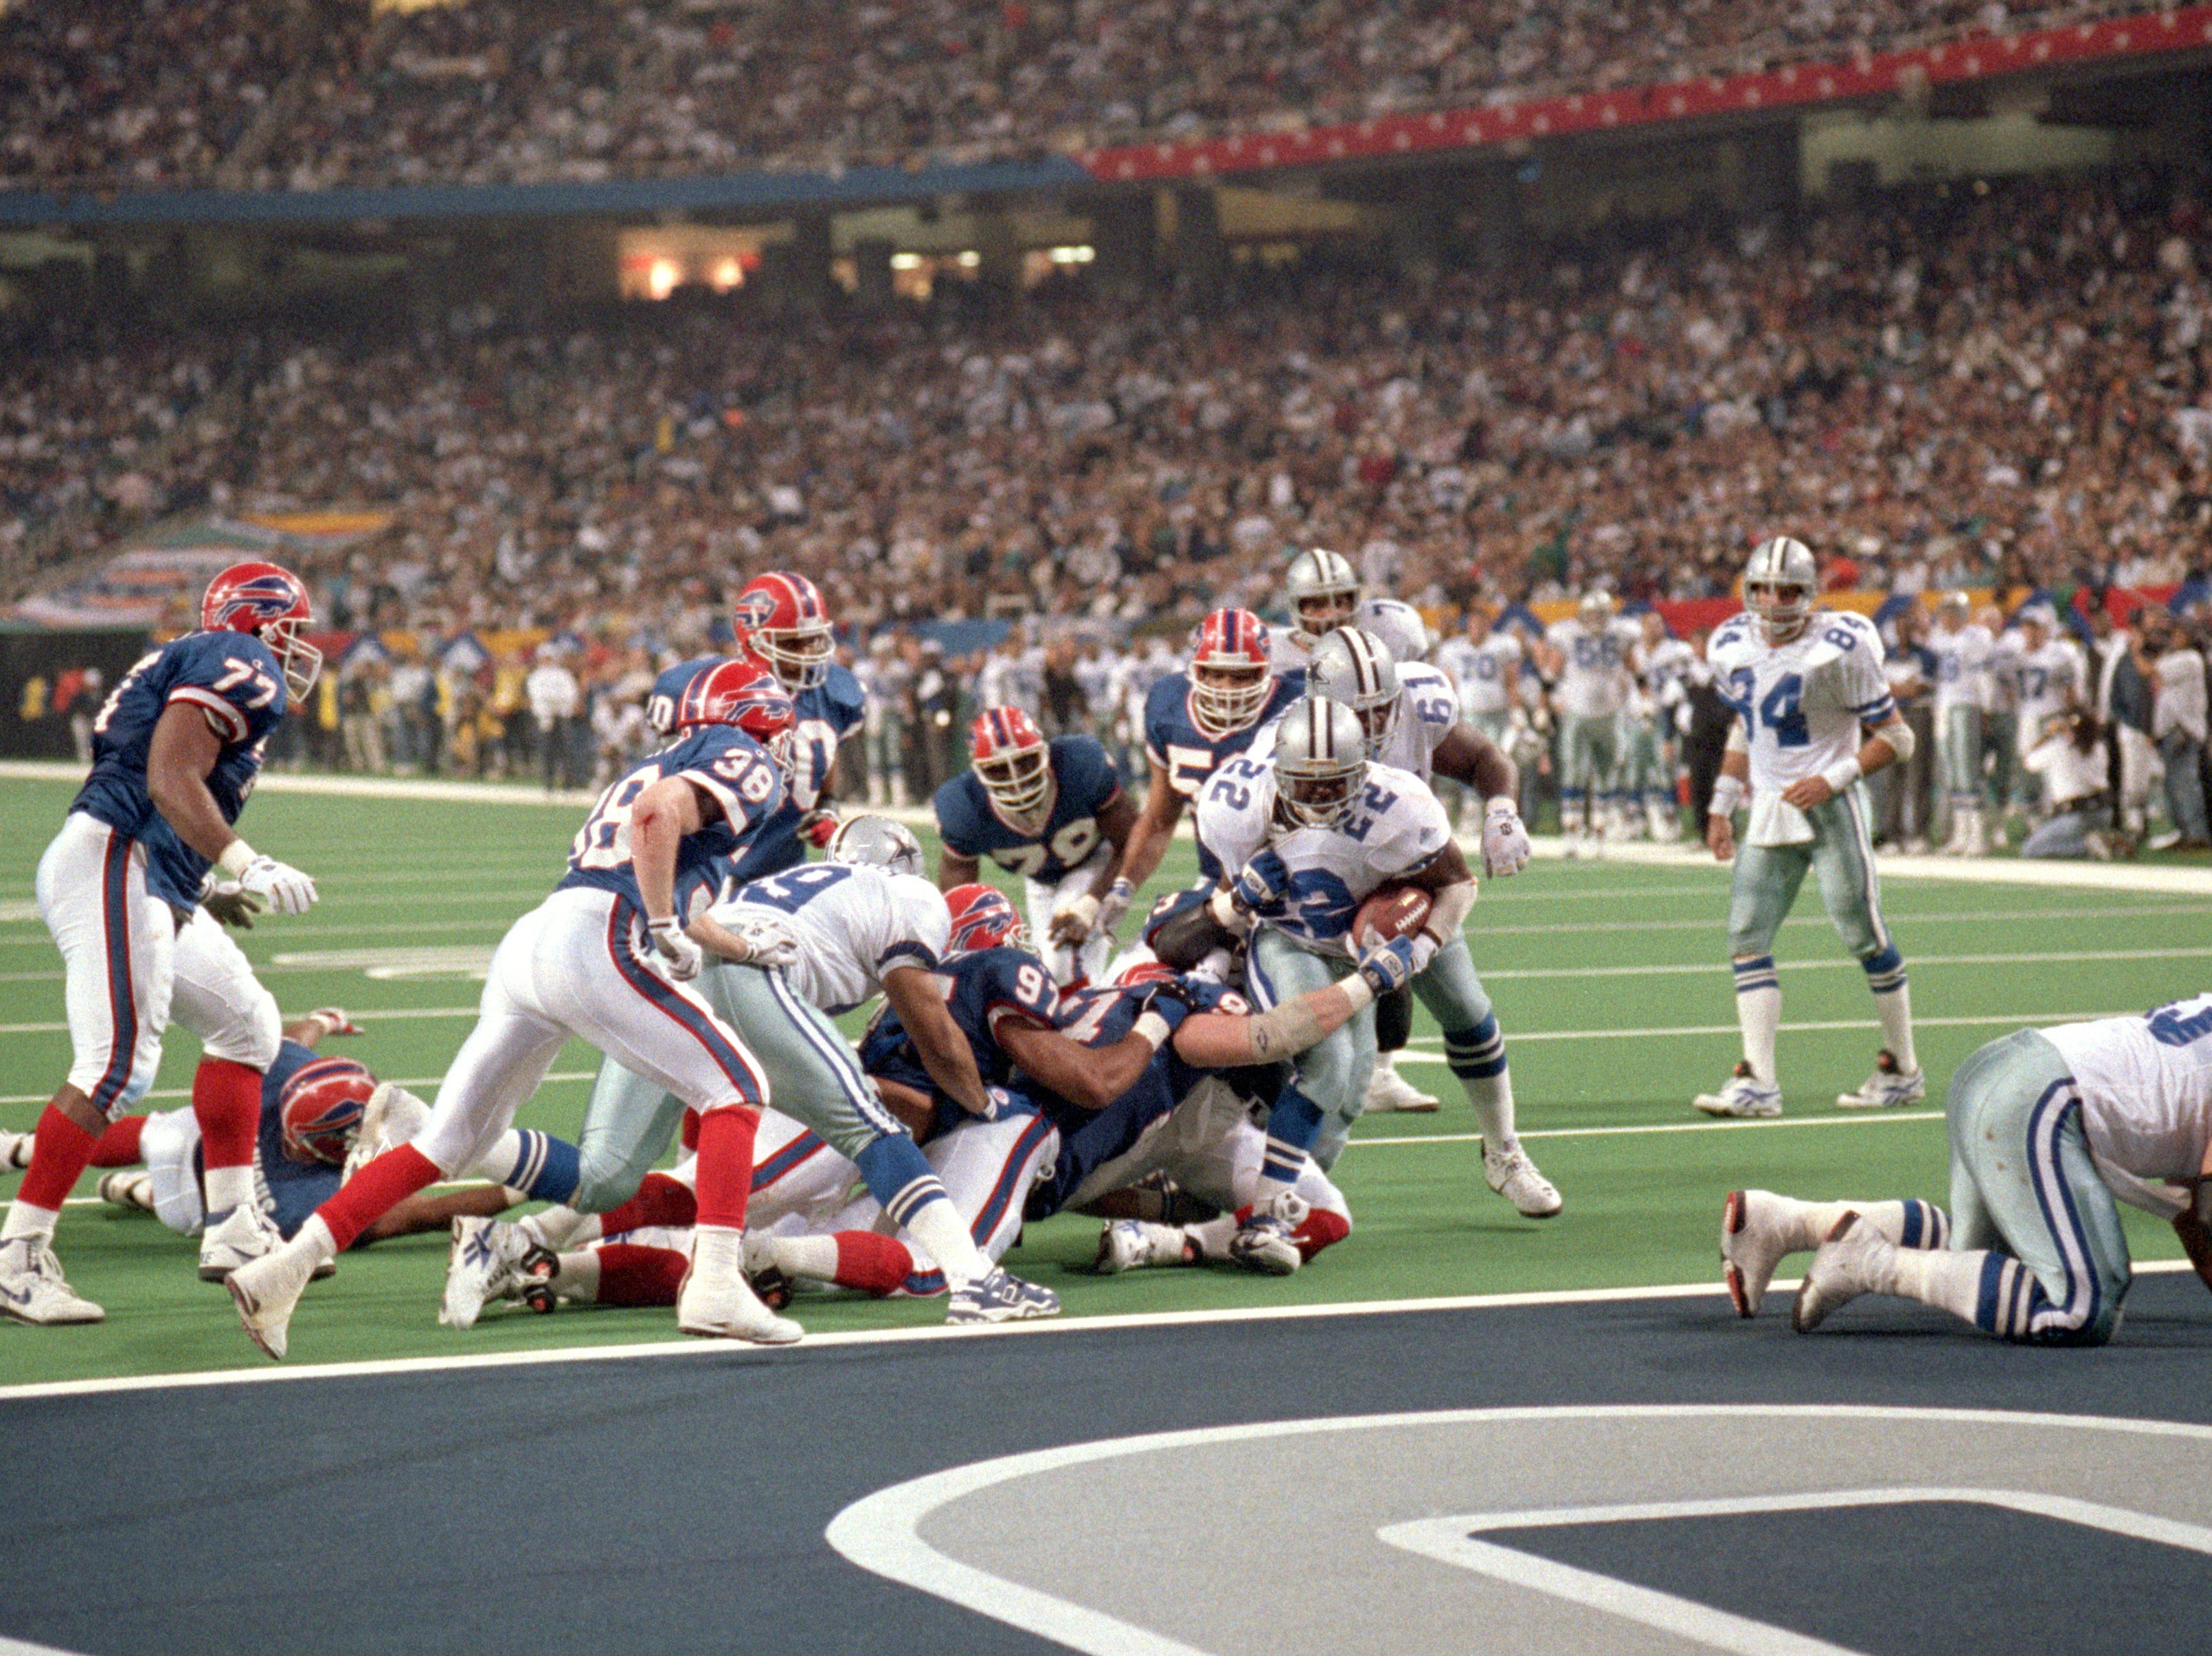 ATLANTA - JANUARY 30:  Running back Emmitt Smith #22 of the Dallas Cowboys scores a one yard touchdown with 9:50 left of the clock putting Dallas up 27-13 in the fourth quarter in Super Bowl XXVIII against the Buffalo Bills at the Georgia Dome on January 30, 1994 in Atlanta, Georgia.  The Cowboys won 30-13.  (Photo by George Rose/Getty Images)